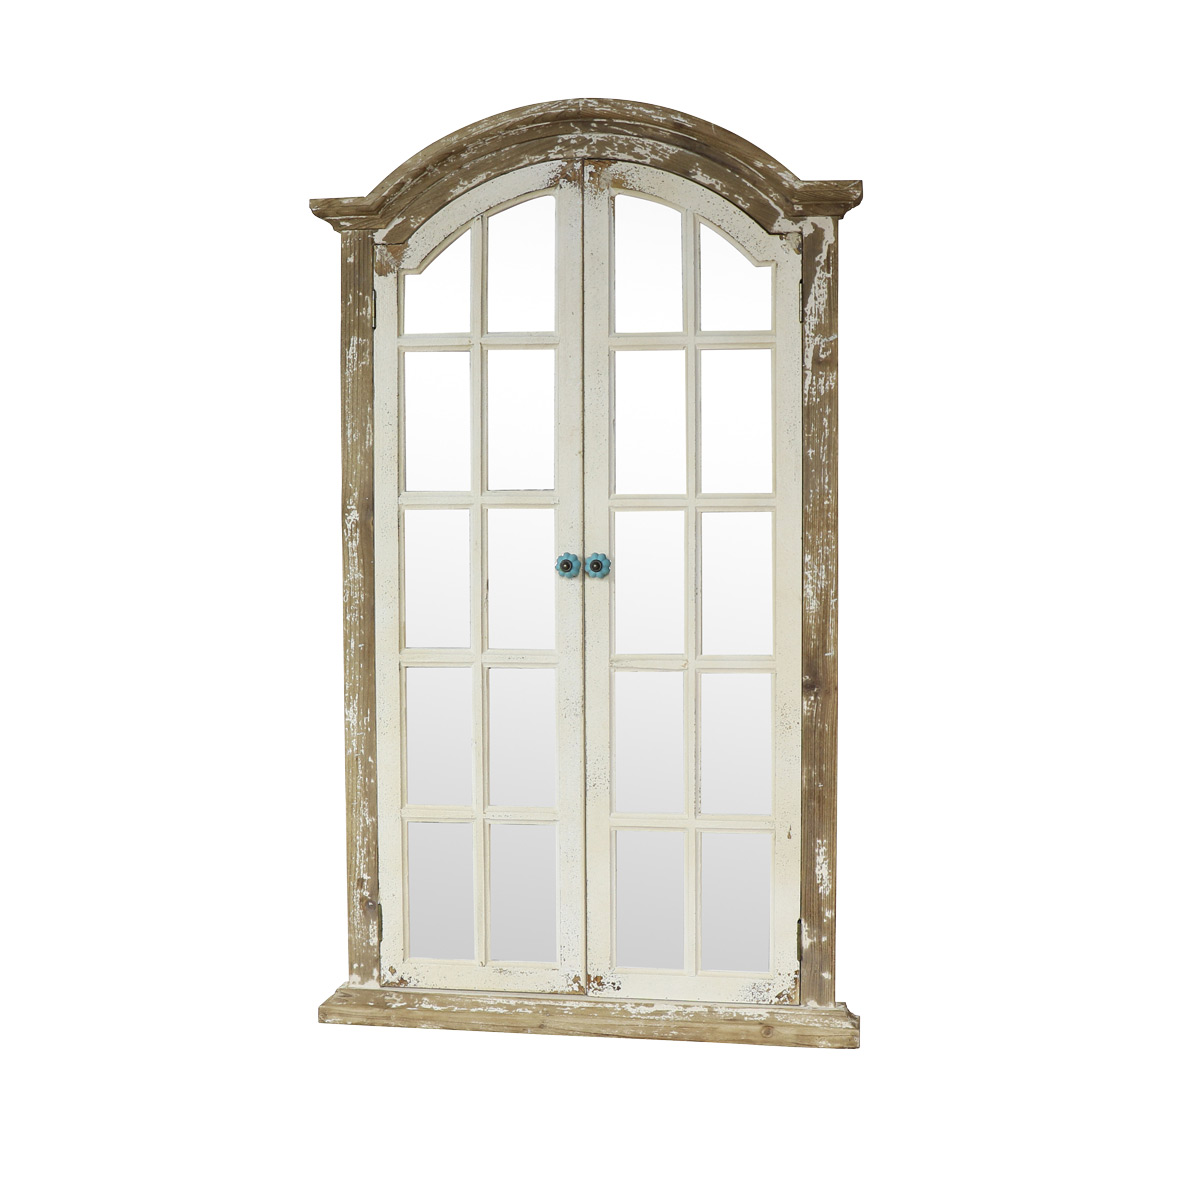 Large rustic shutter style window mirror 73cm x 123cm for Window mirror